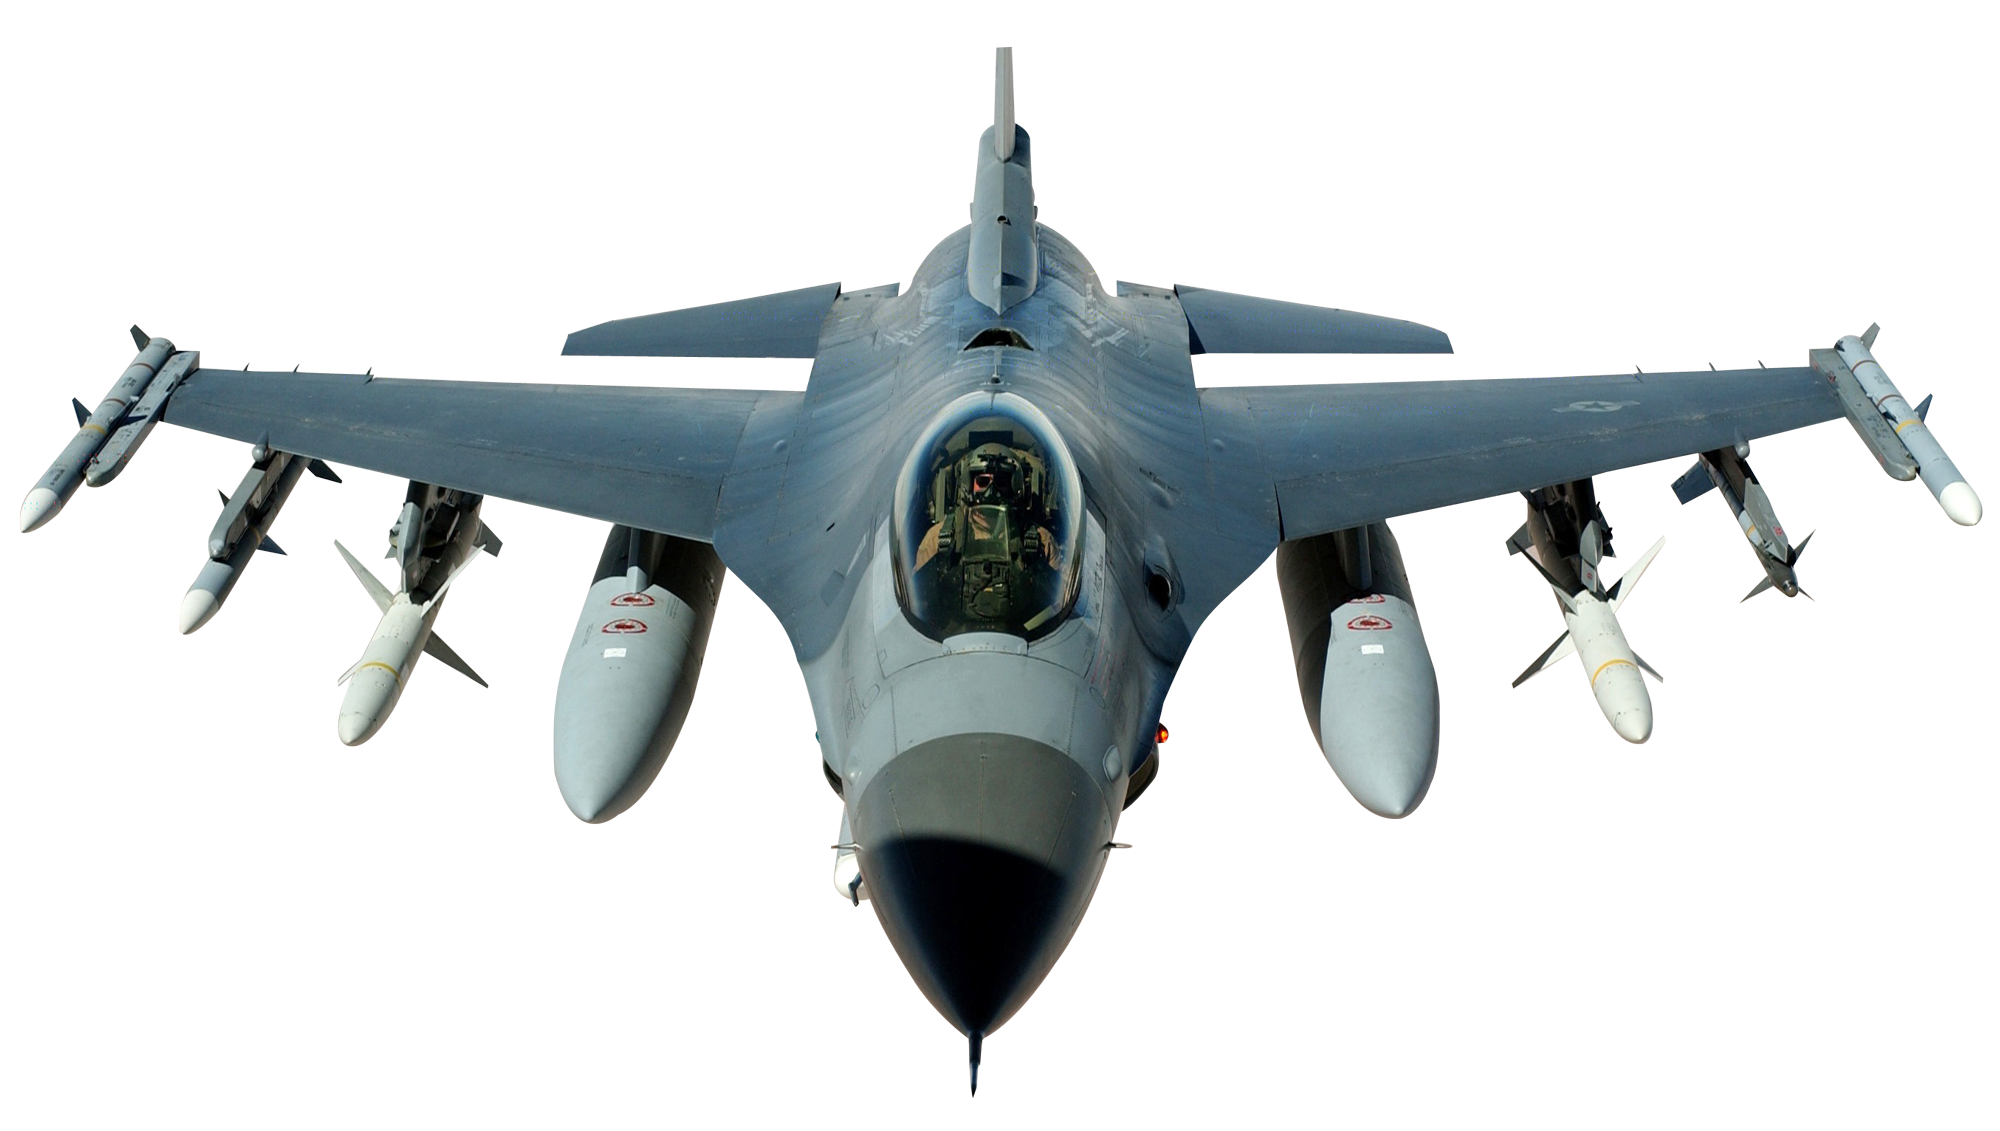 Fighter jet png. Military image purepng free